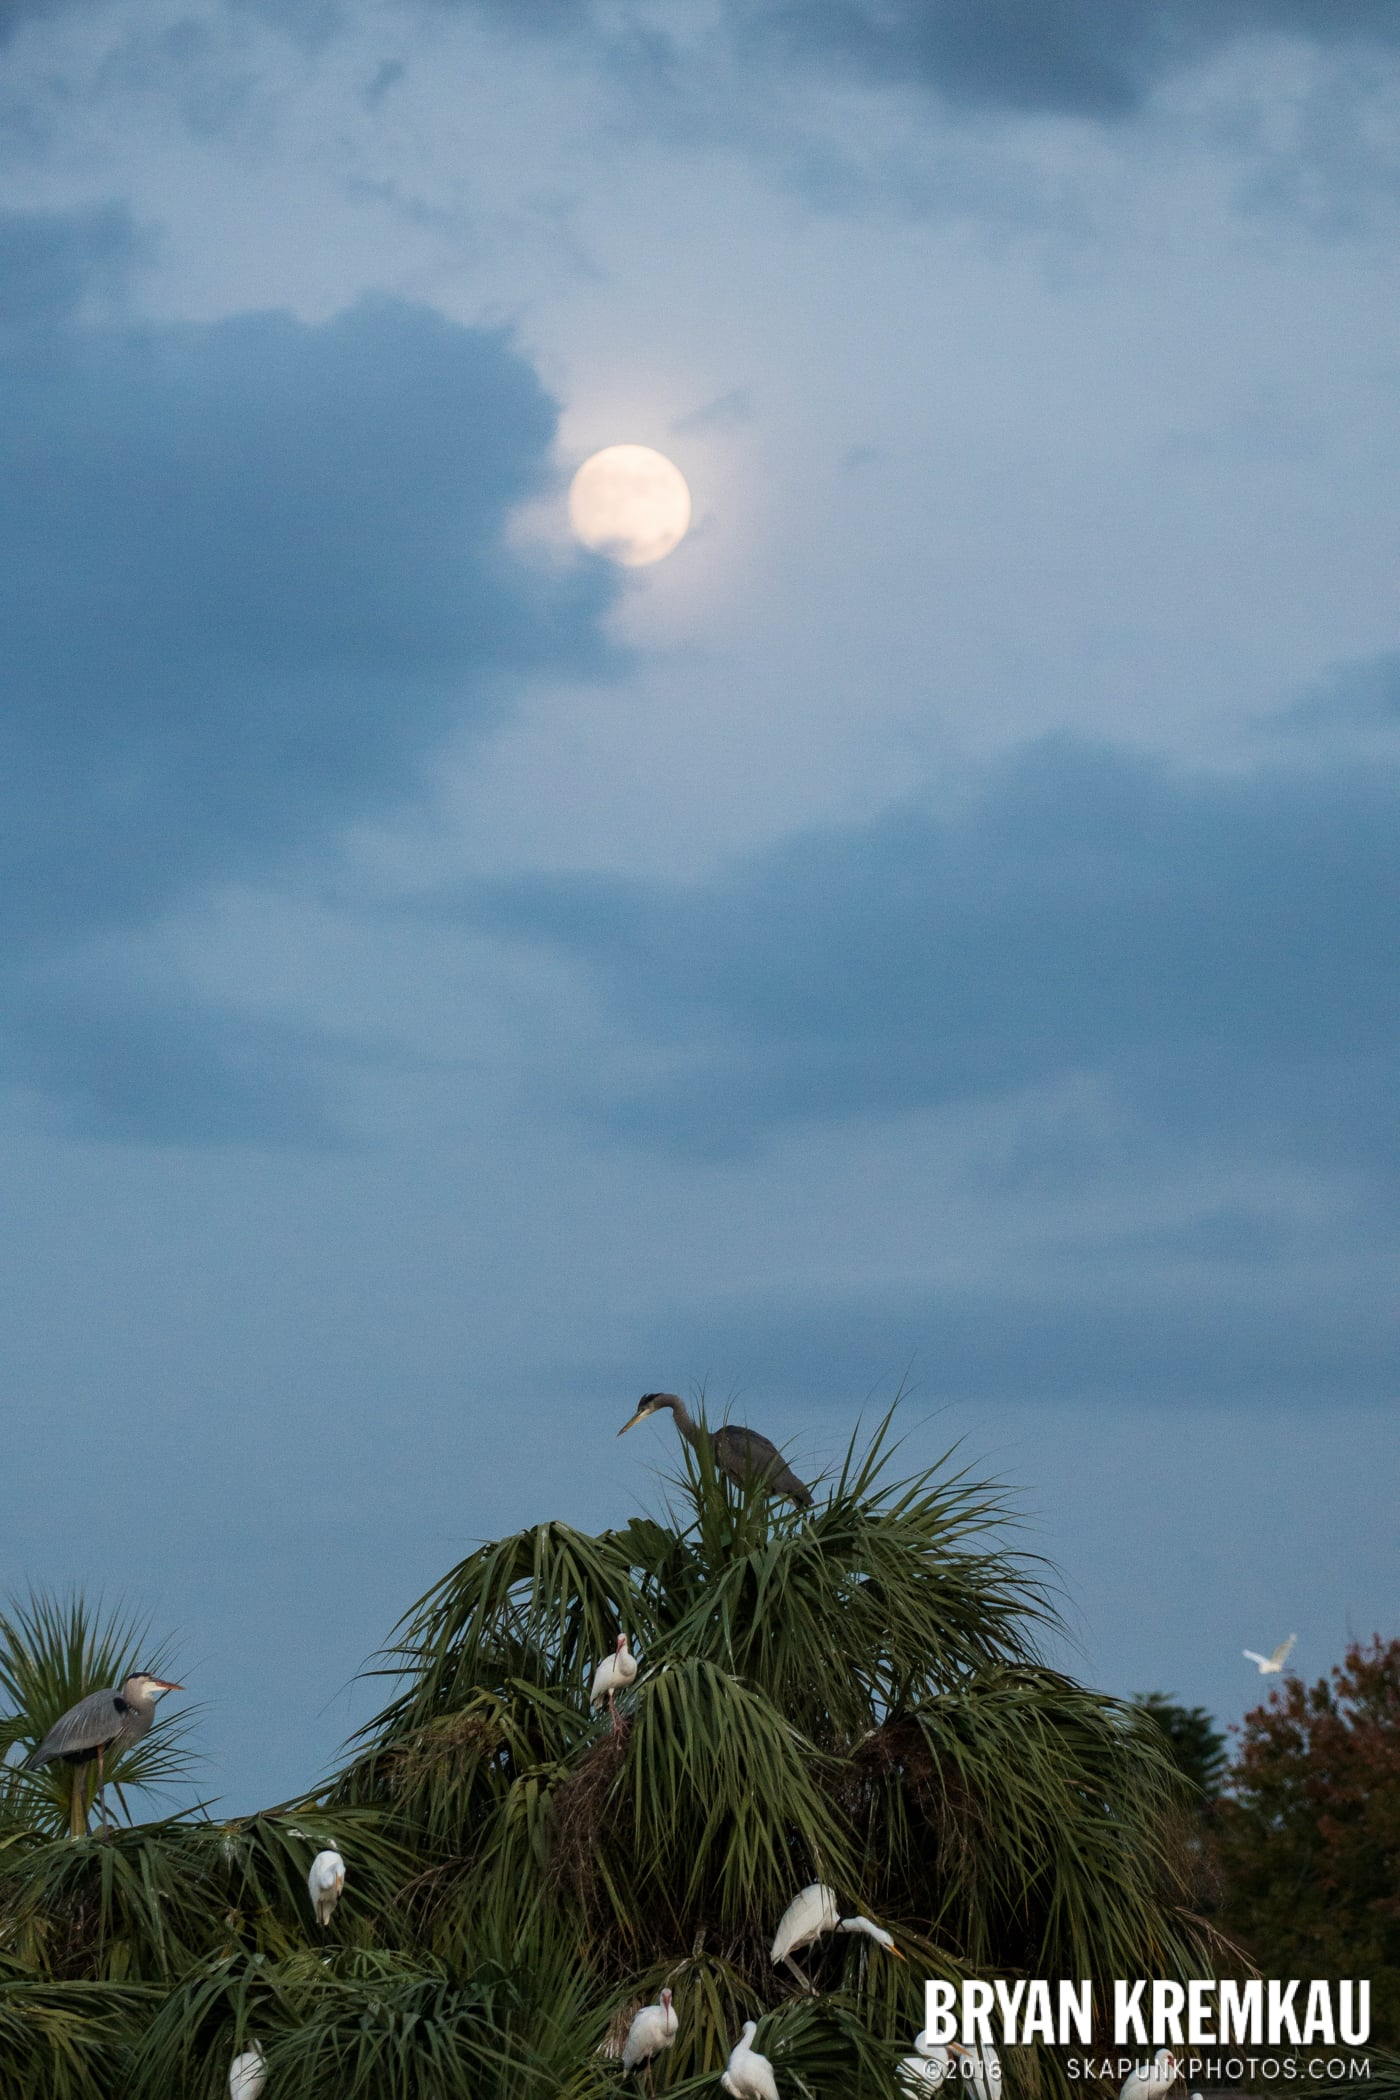 Sunsets, Astrophotography & Birds @ Venice, Florida - 10.25.14 - 11.5.14 (10)